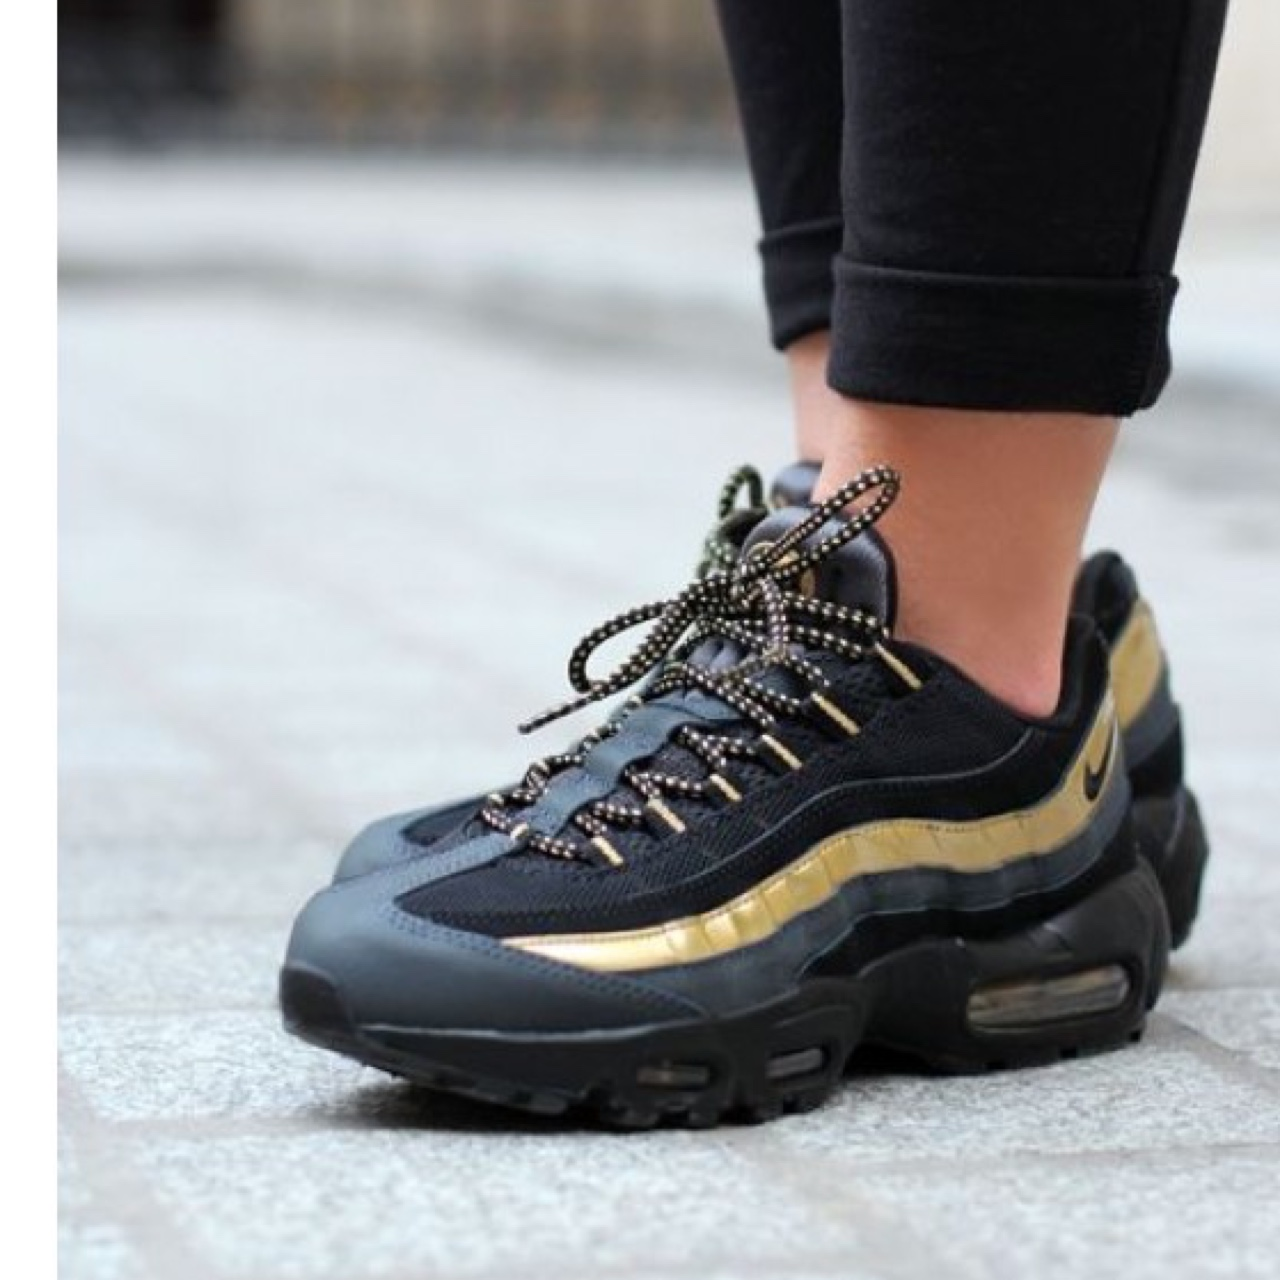 online store 71e9d f7884 Nike air max 95 black and gold edition £65 us 7 uk 6... - Depop